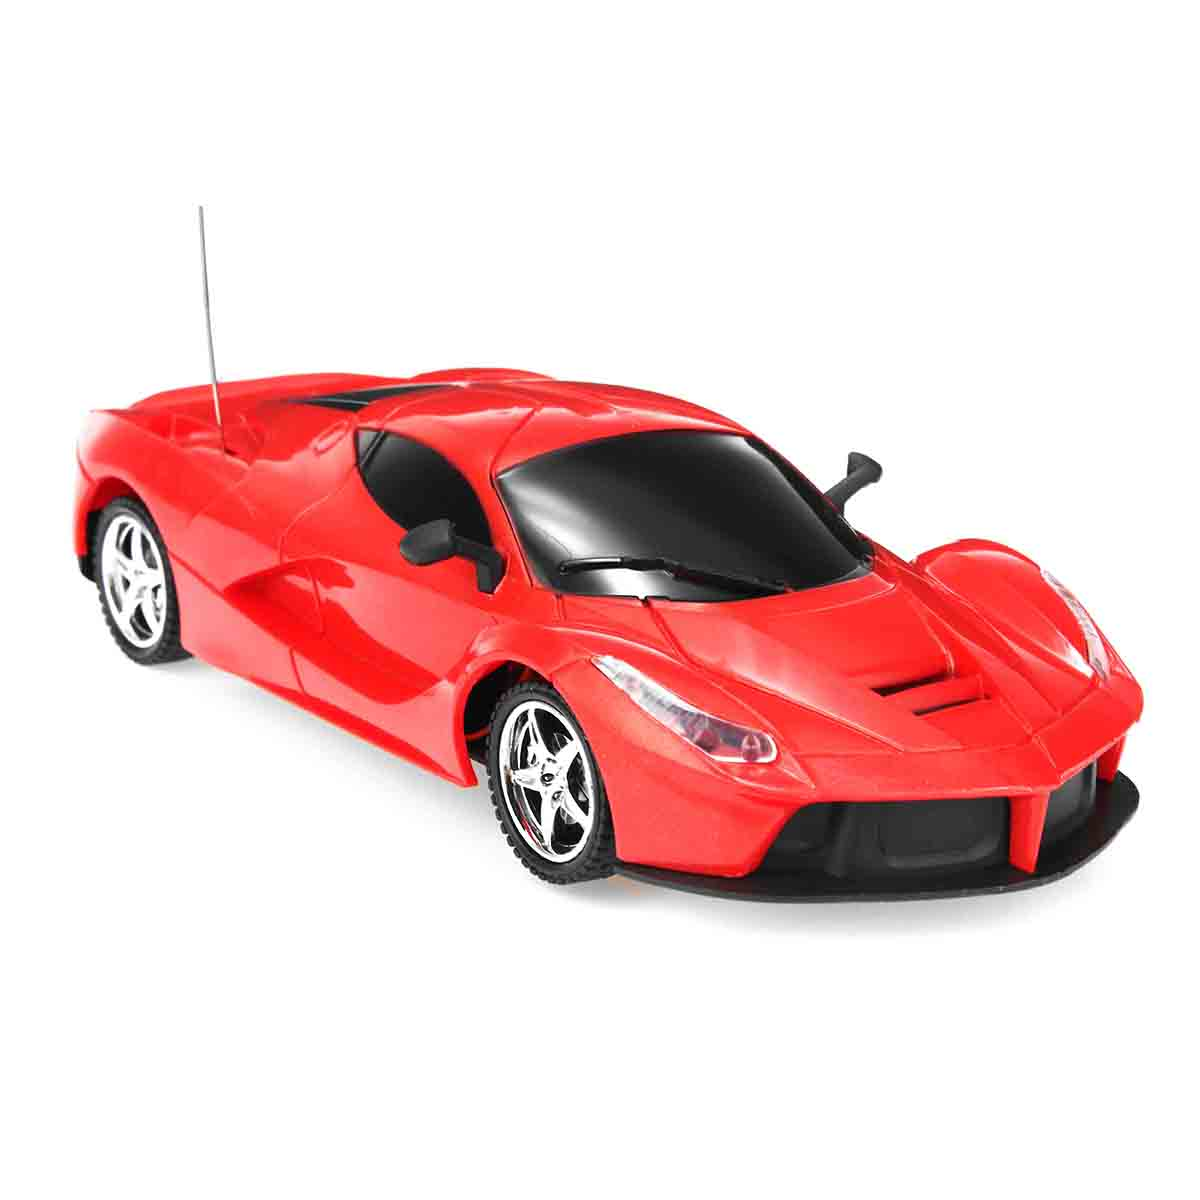 1:24 RC toys & Hobbie Scale Lamborghini Radio Remote Control Model Car for Kids Adults (Red) Hobby Gift